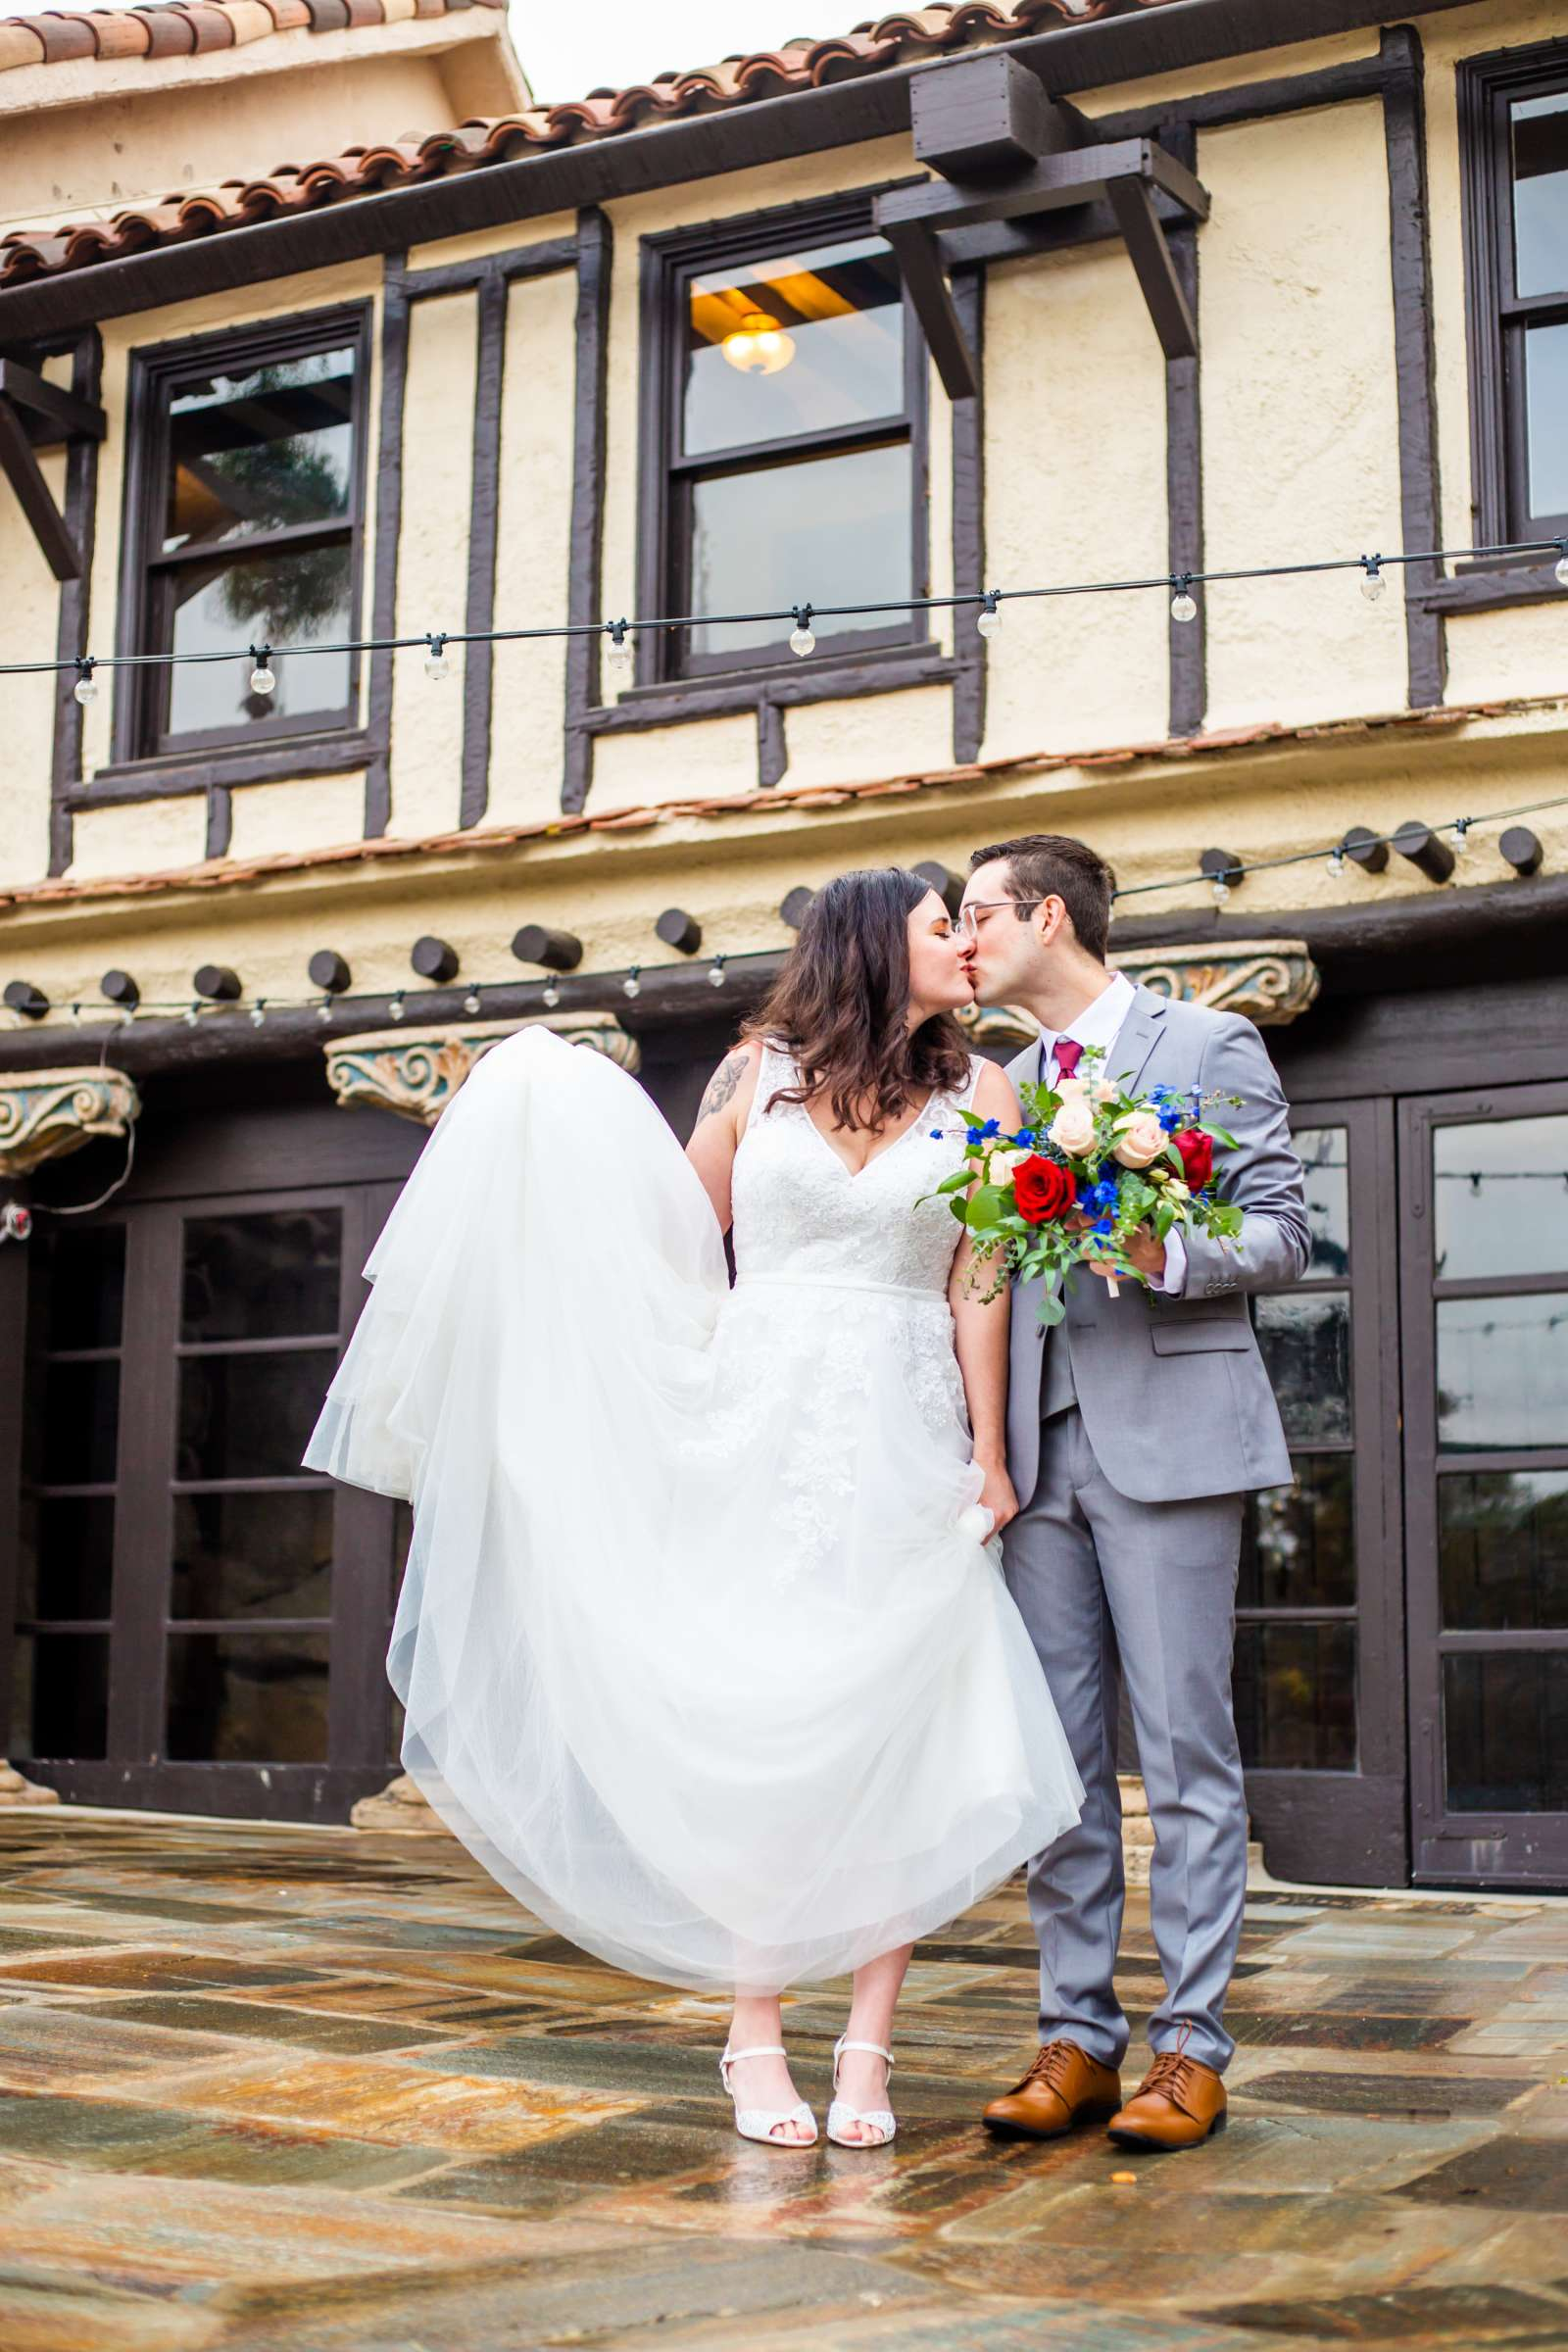 Mt Woodson Castle Wedding, Valerie and Ian Wedding Photo #16 by True Photography